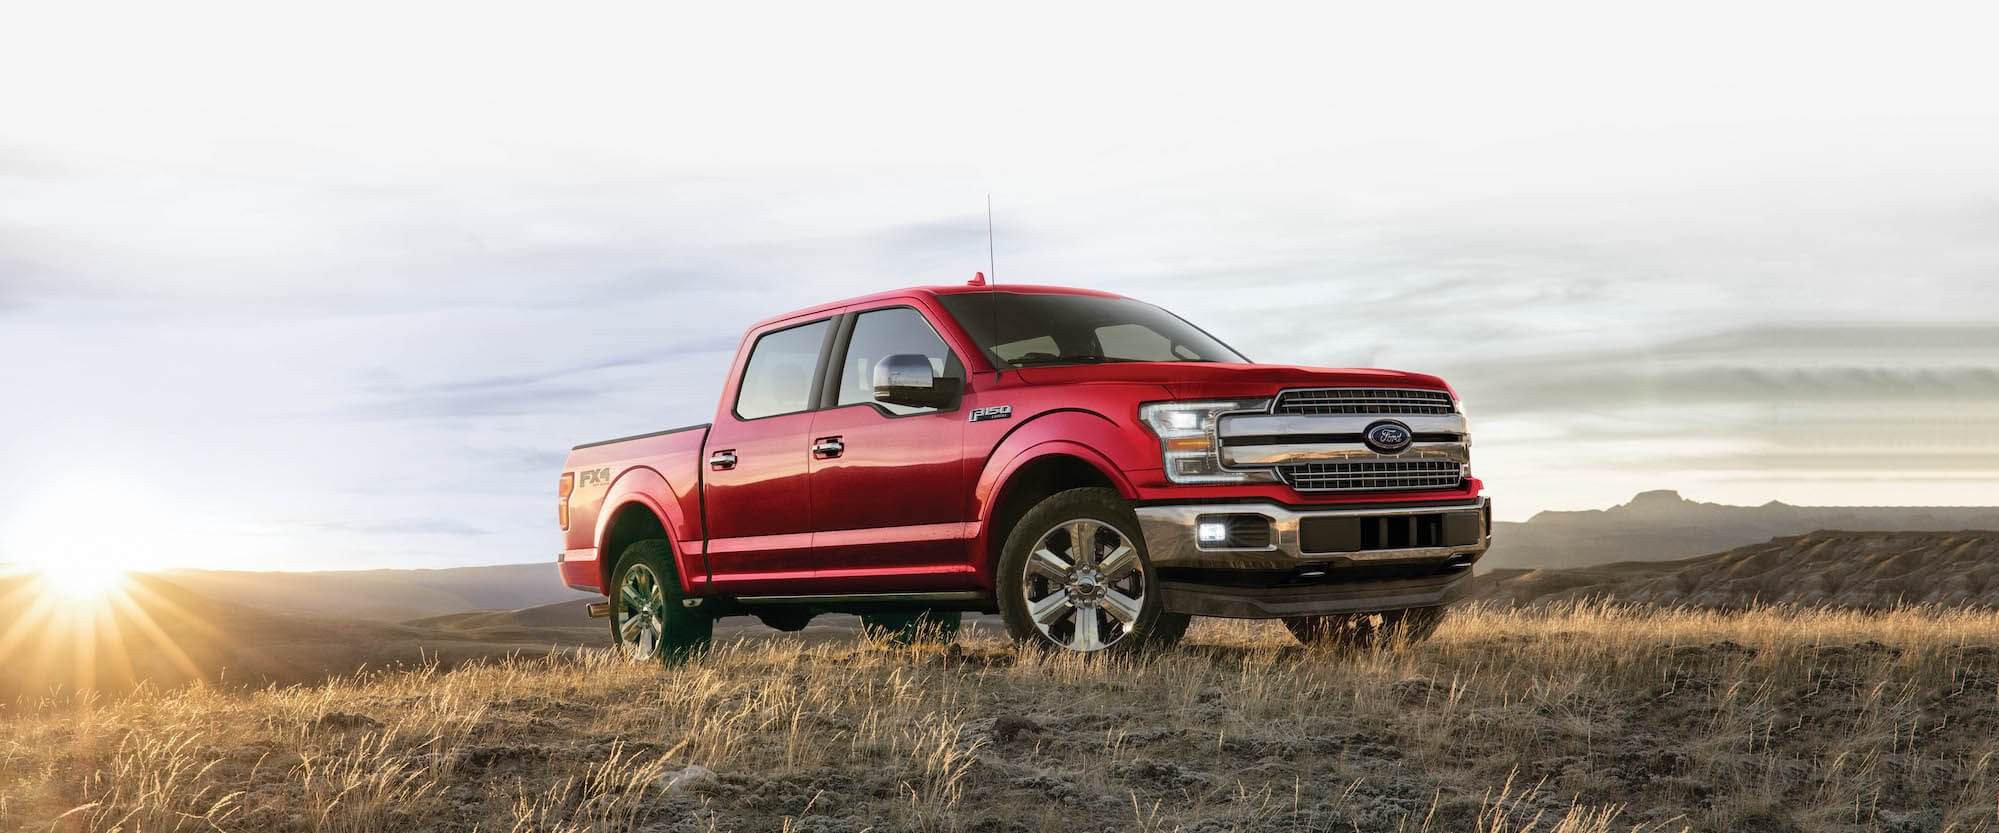 Mullinax Ford of West Palm Beach - Certified Pre-owned (CPO) F-150 Truck Banner